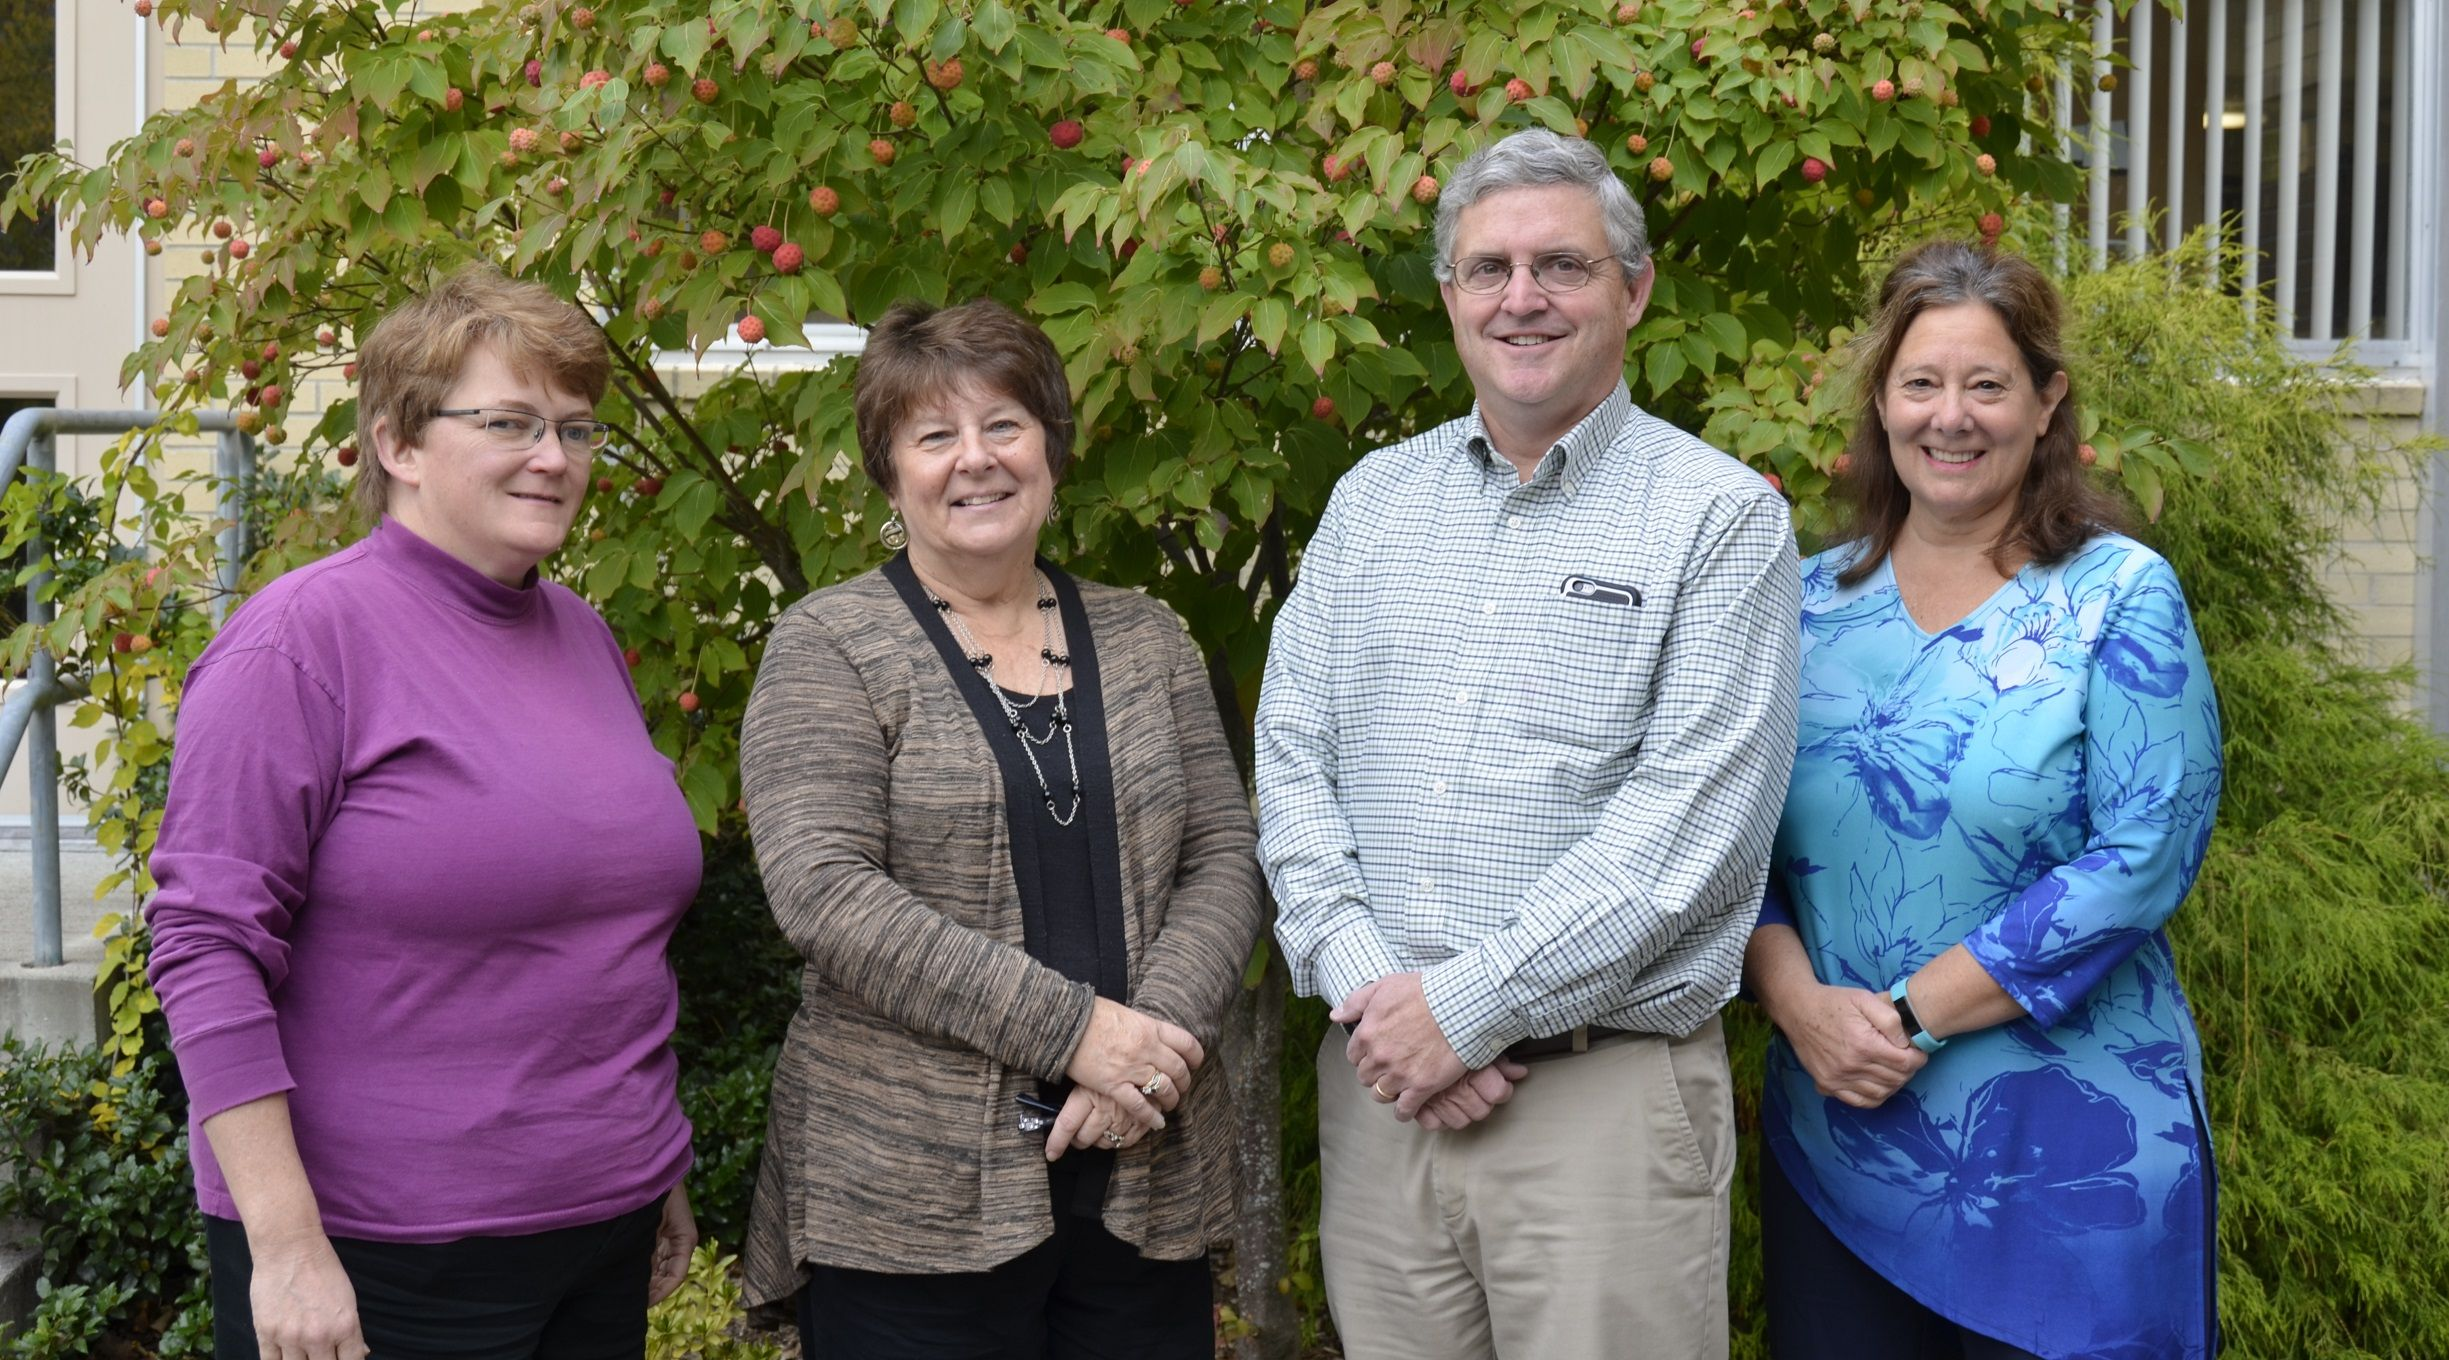 Ms. Patricia J Kernstock, Mrs. Paula Cheney, Mr. Jeff Dailey and Mrs. Alice Giarrusso